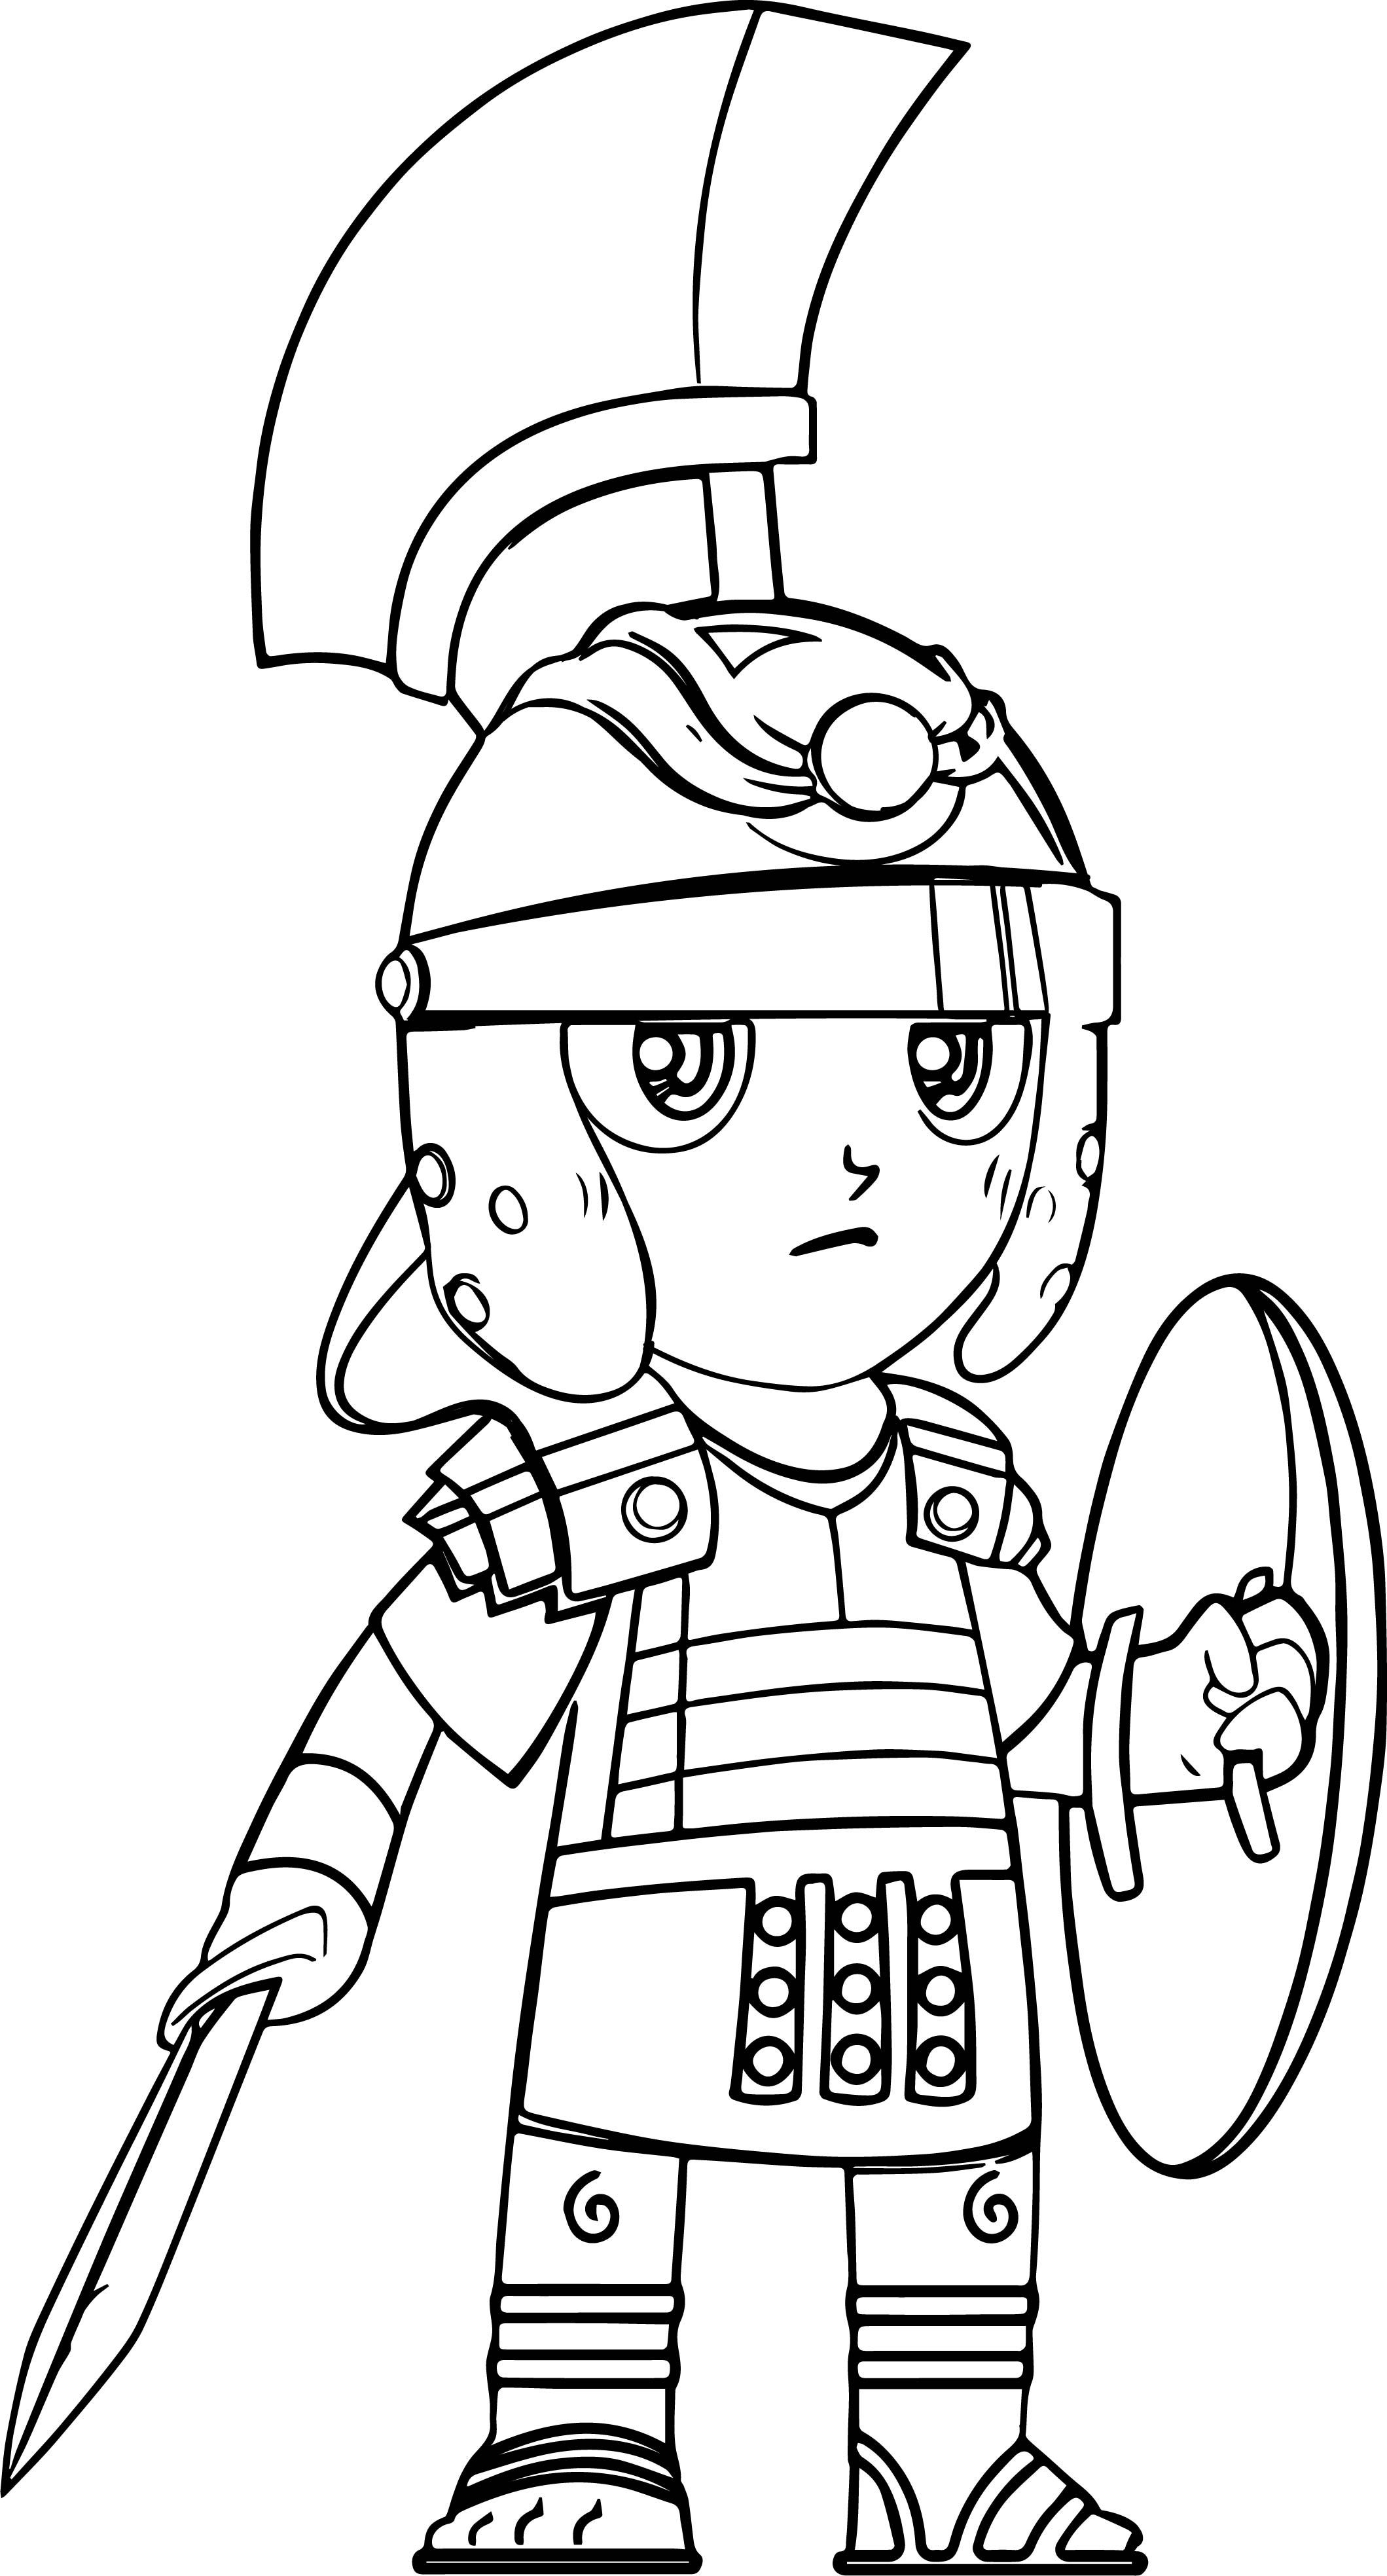 cool Cartoon Roman Soldier Pictures Coloring Page | wecoloringpage ...